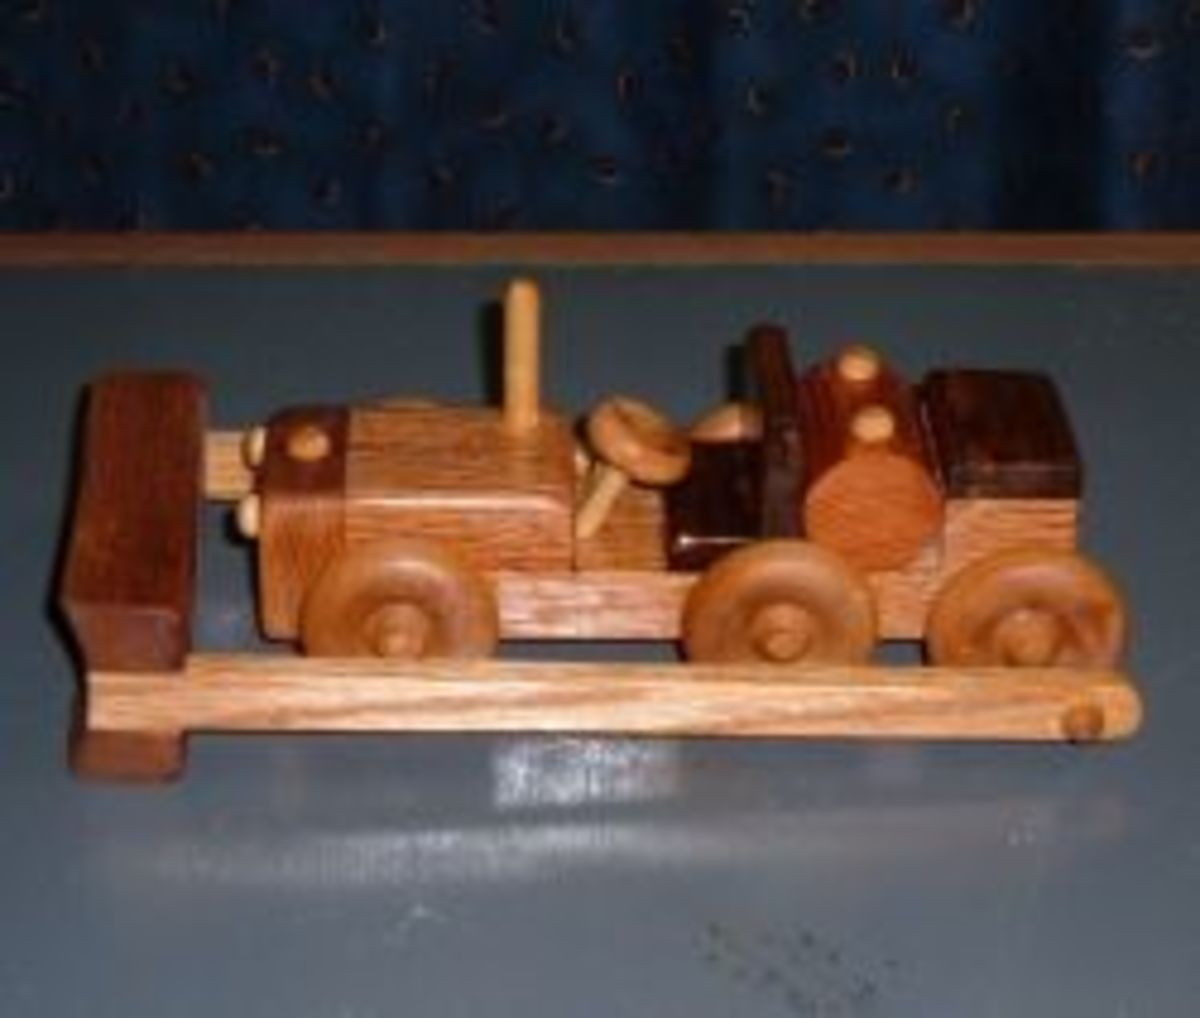 making-handcrafted-wooden-toys-free-bulldozer-plans